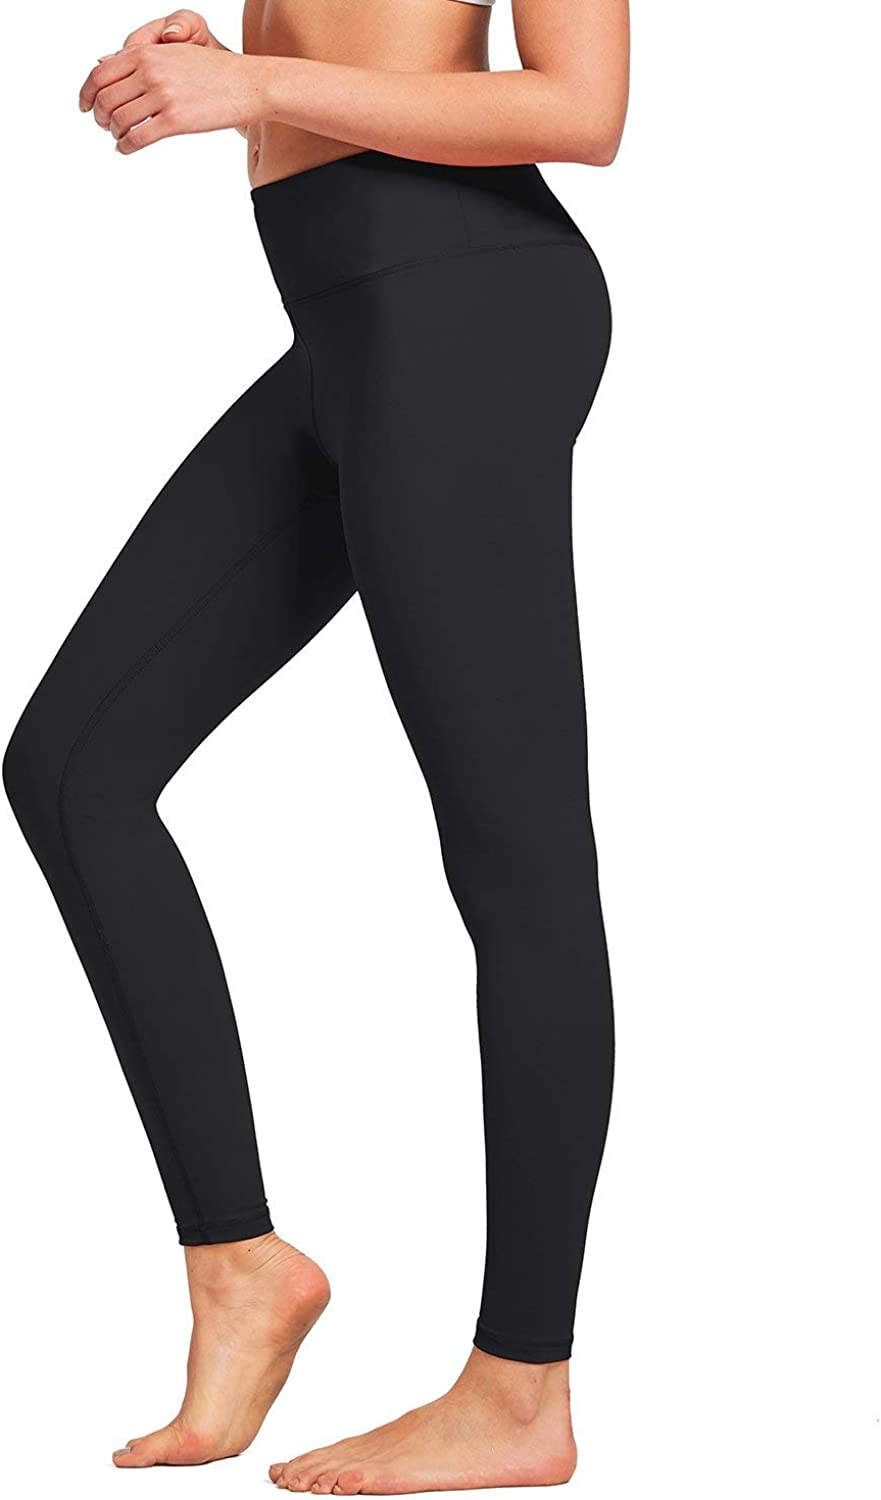 BALEAF Womens Ankle Legging Athletic Yoga Hiking Workout Pants Inner Pocket Non See-Through Fabric